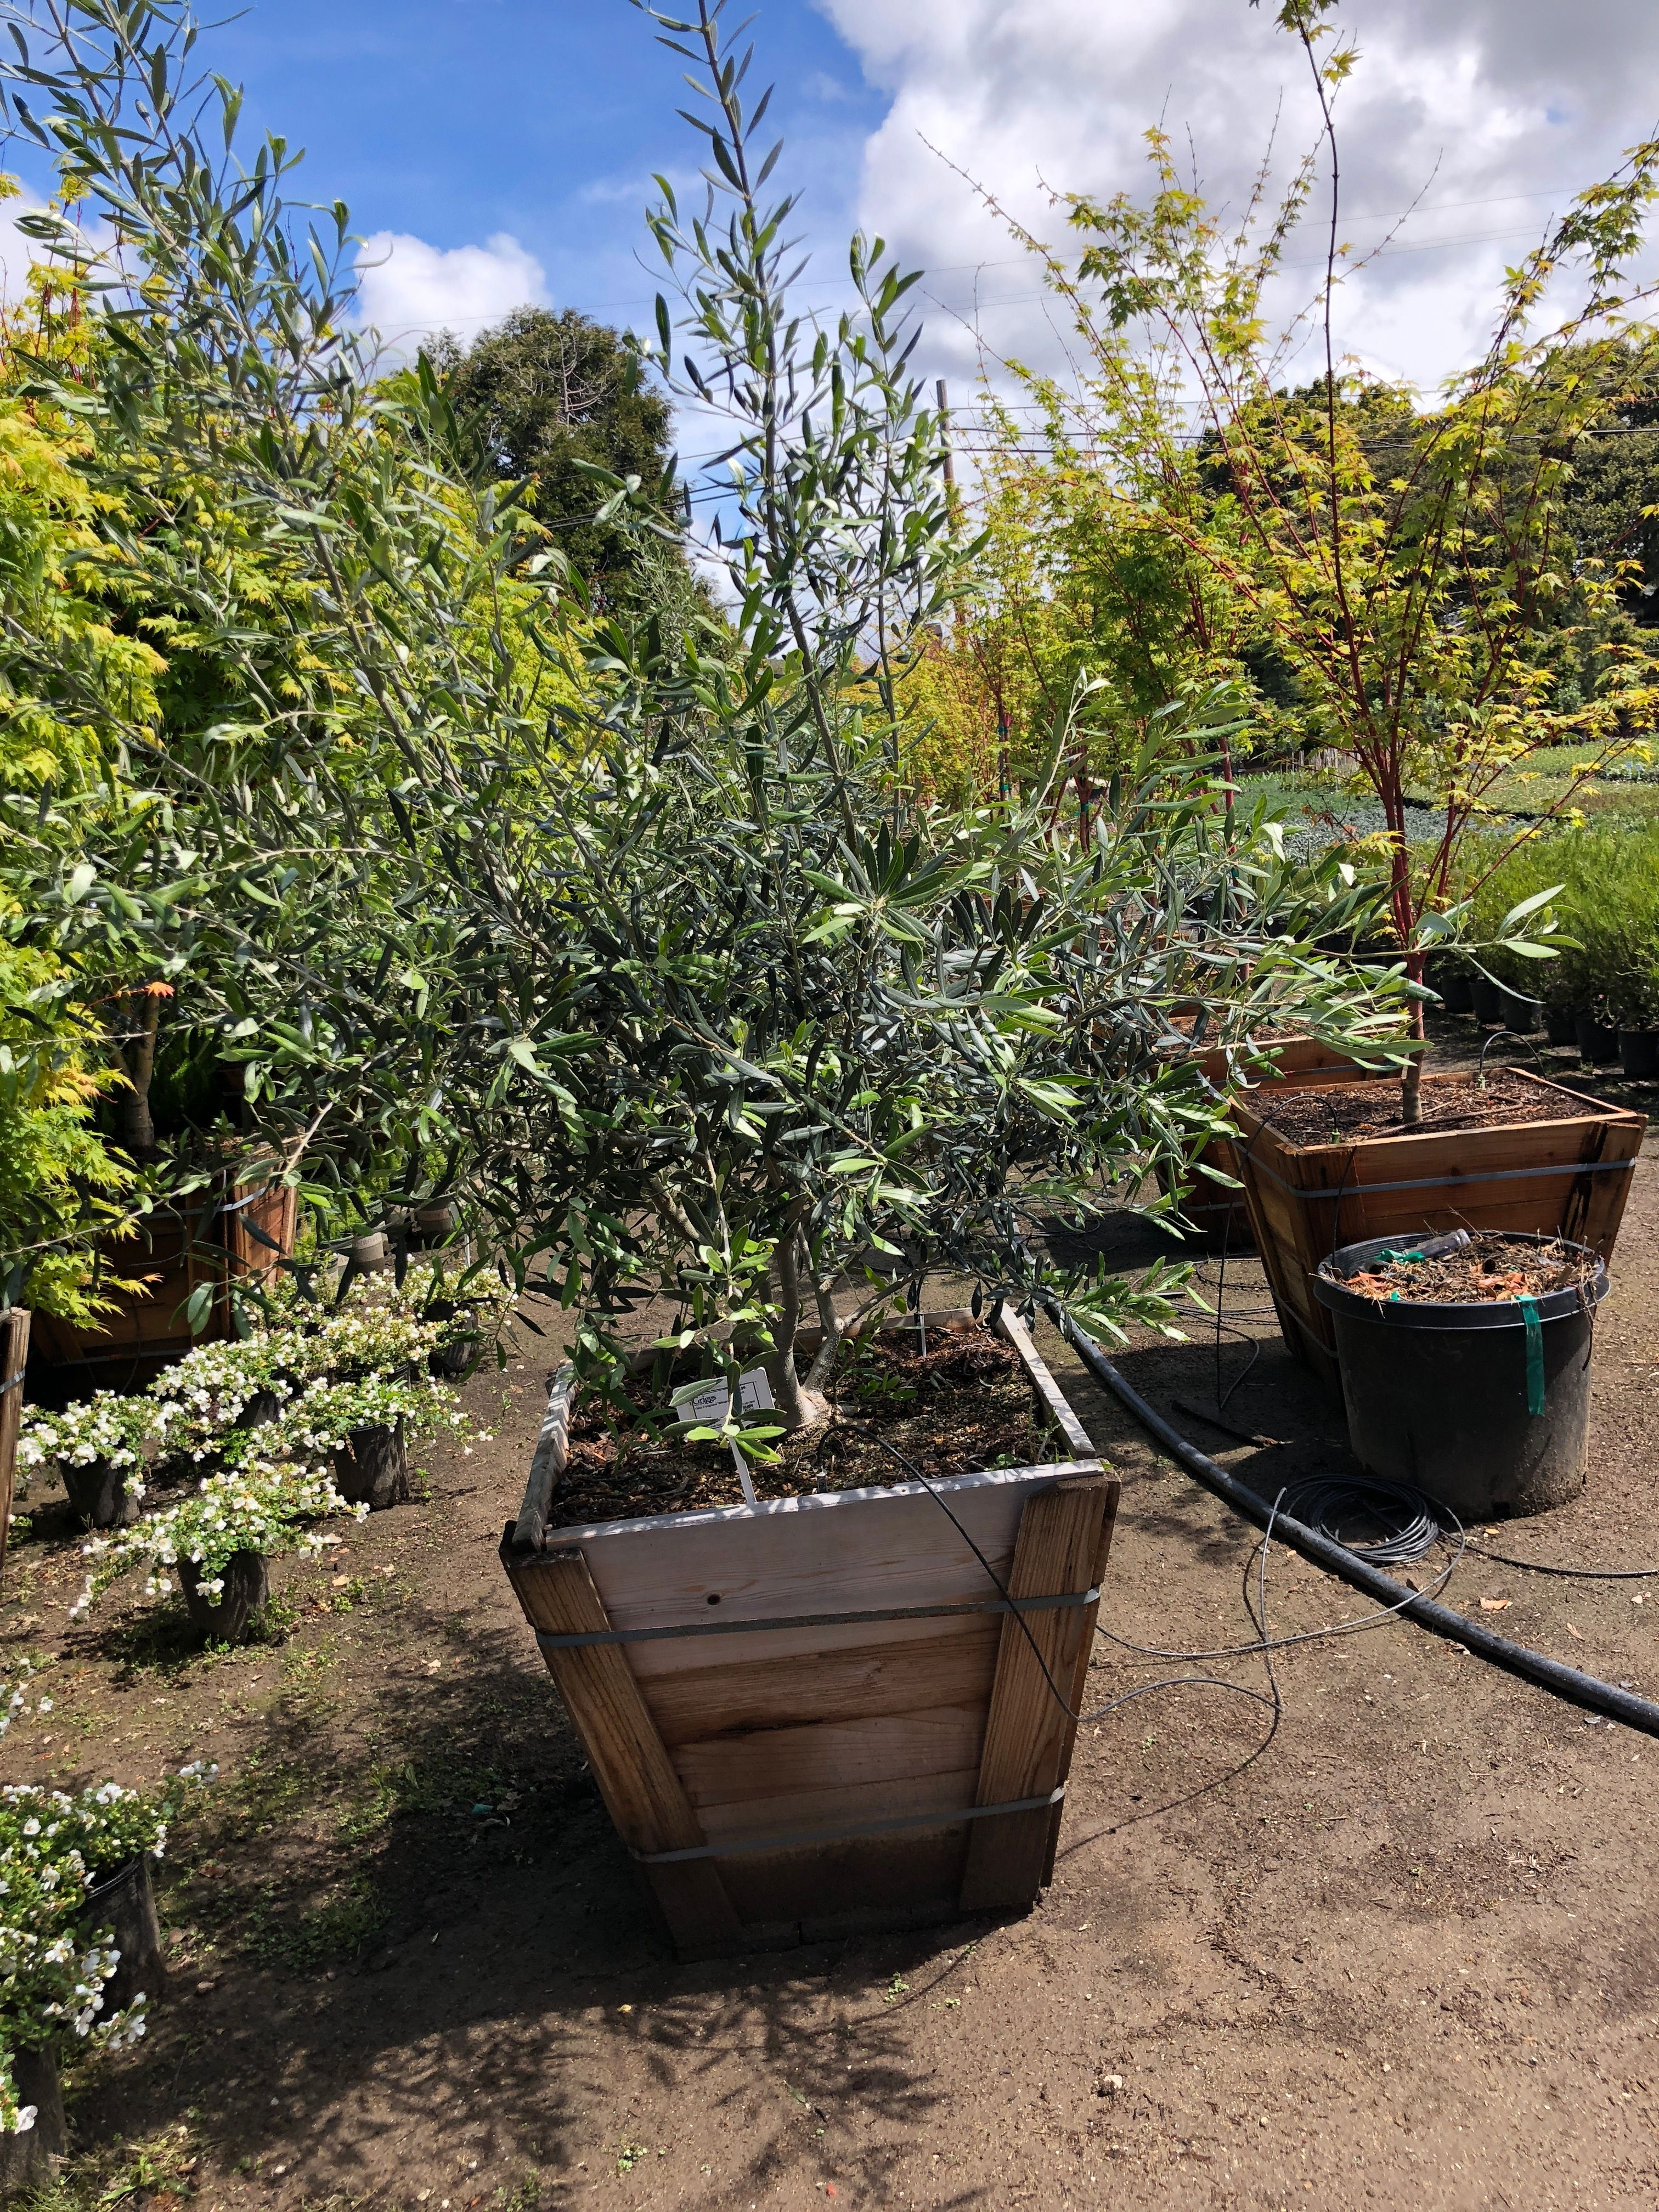 24 Sq Container By 5ft High Multi Trunk Fruitless Olive Tree Griggs Nursery The Lower Limbs Can Be Pruned To Expose